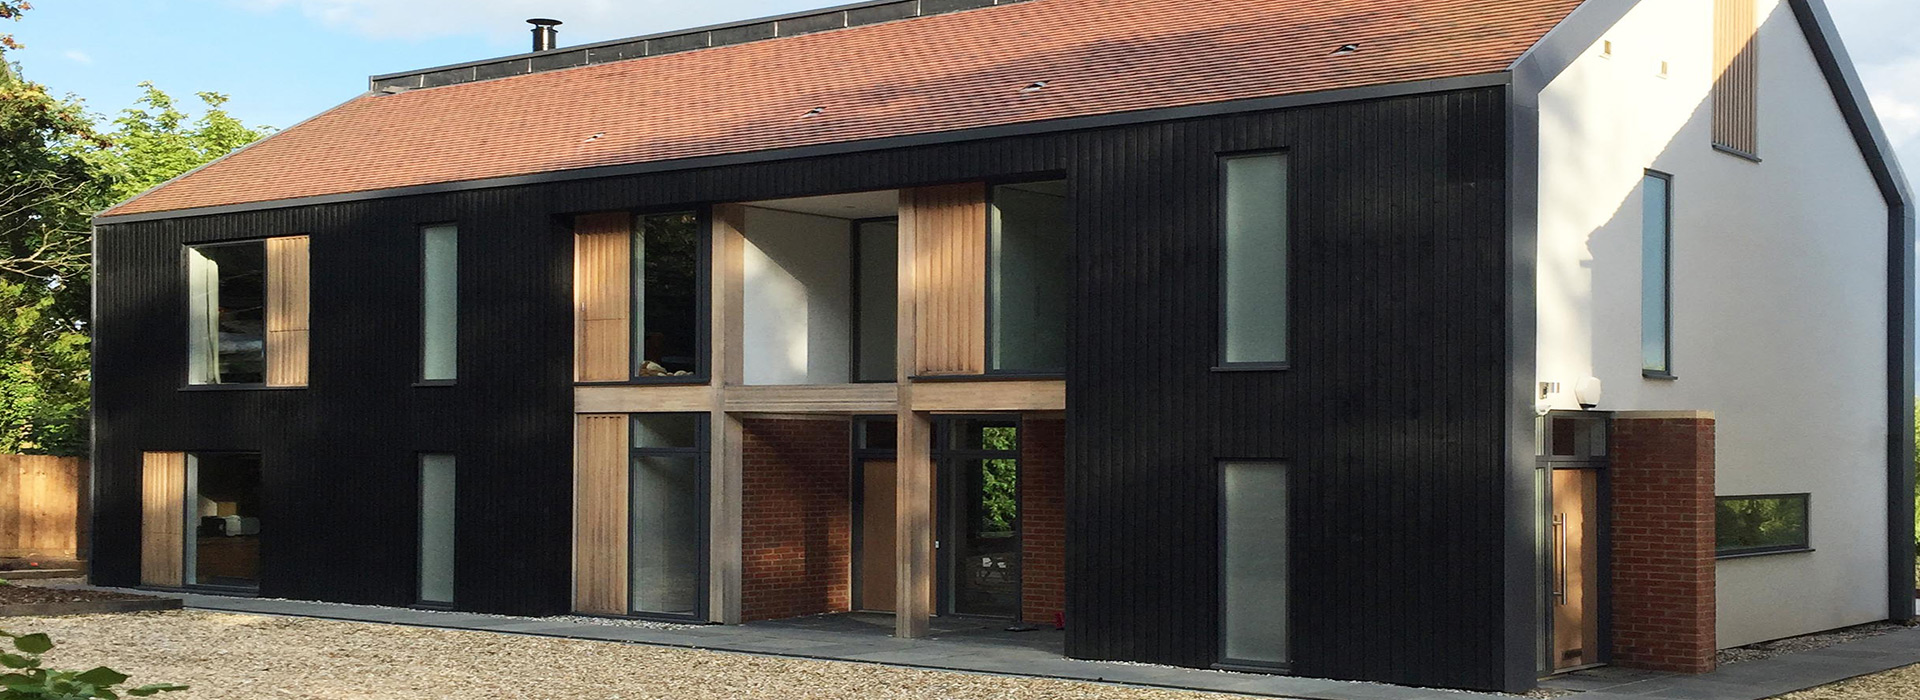 Home exterior with Thermowood cladding